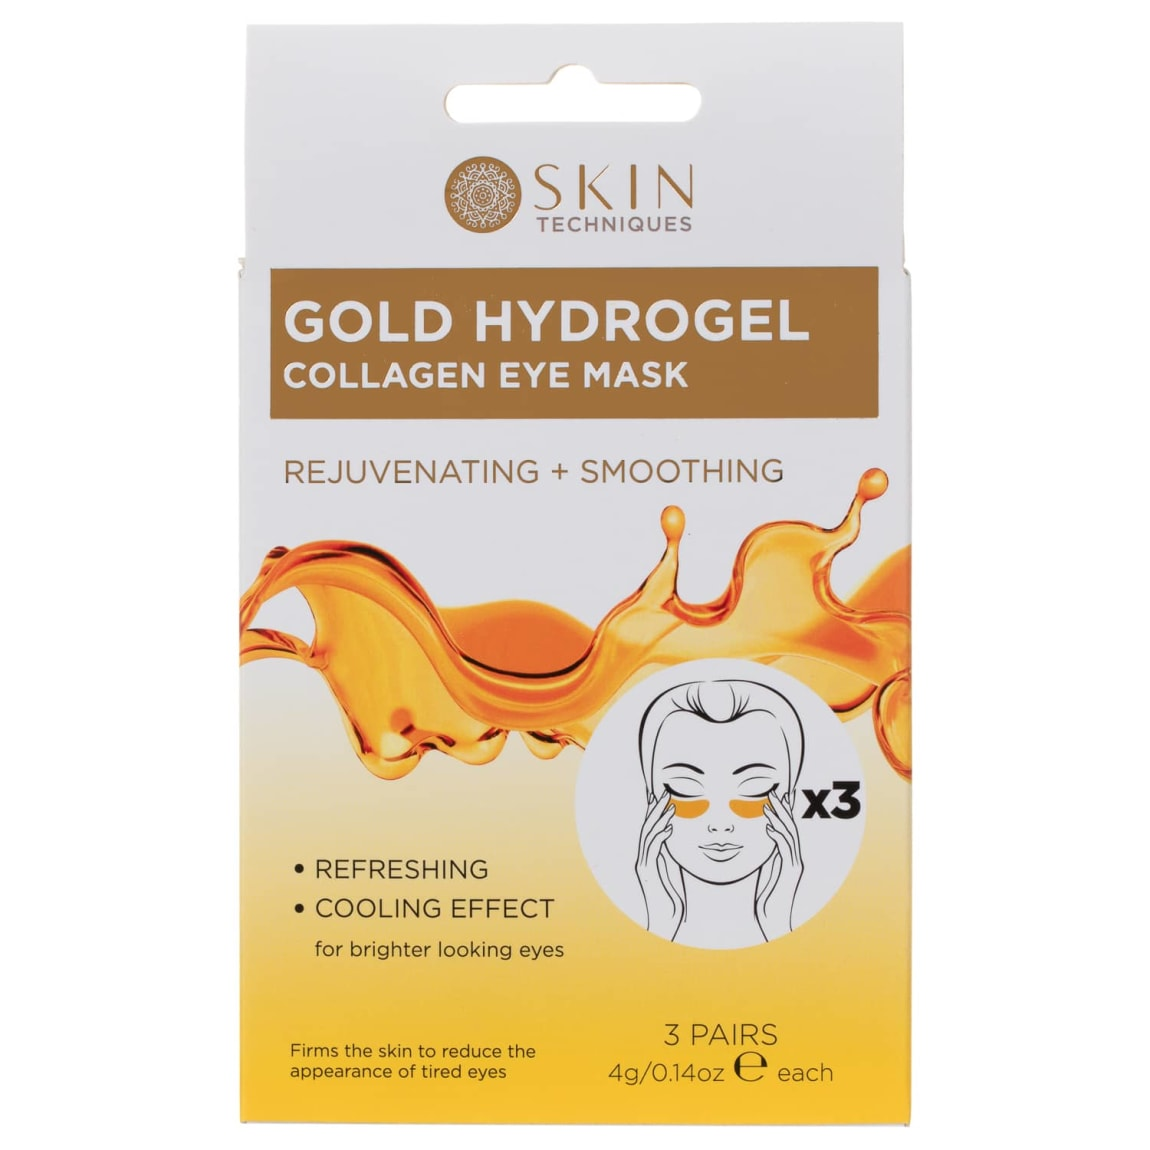 Skin Techniques Gold Hydrogel Collagen Eye Mask